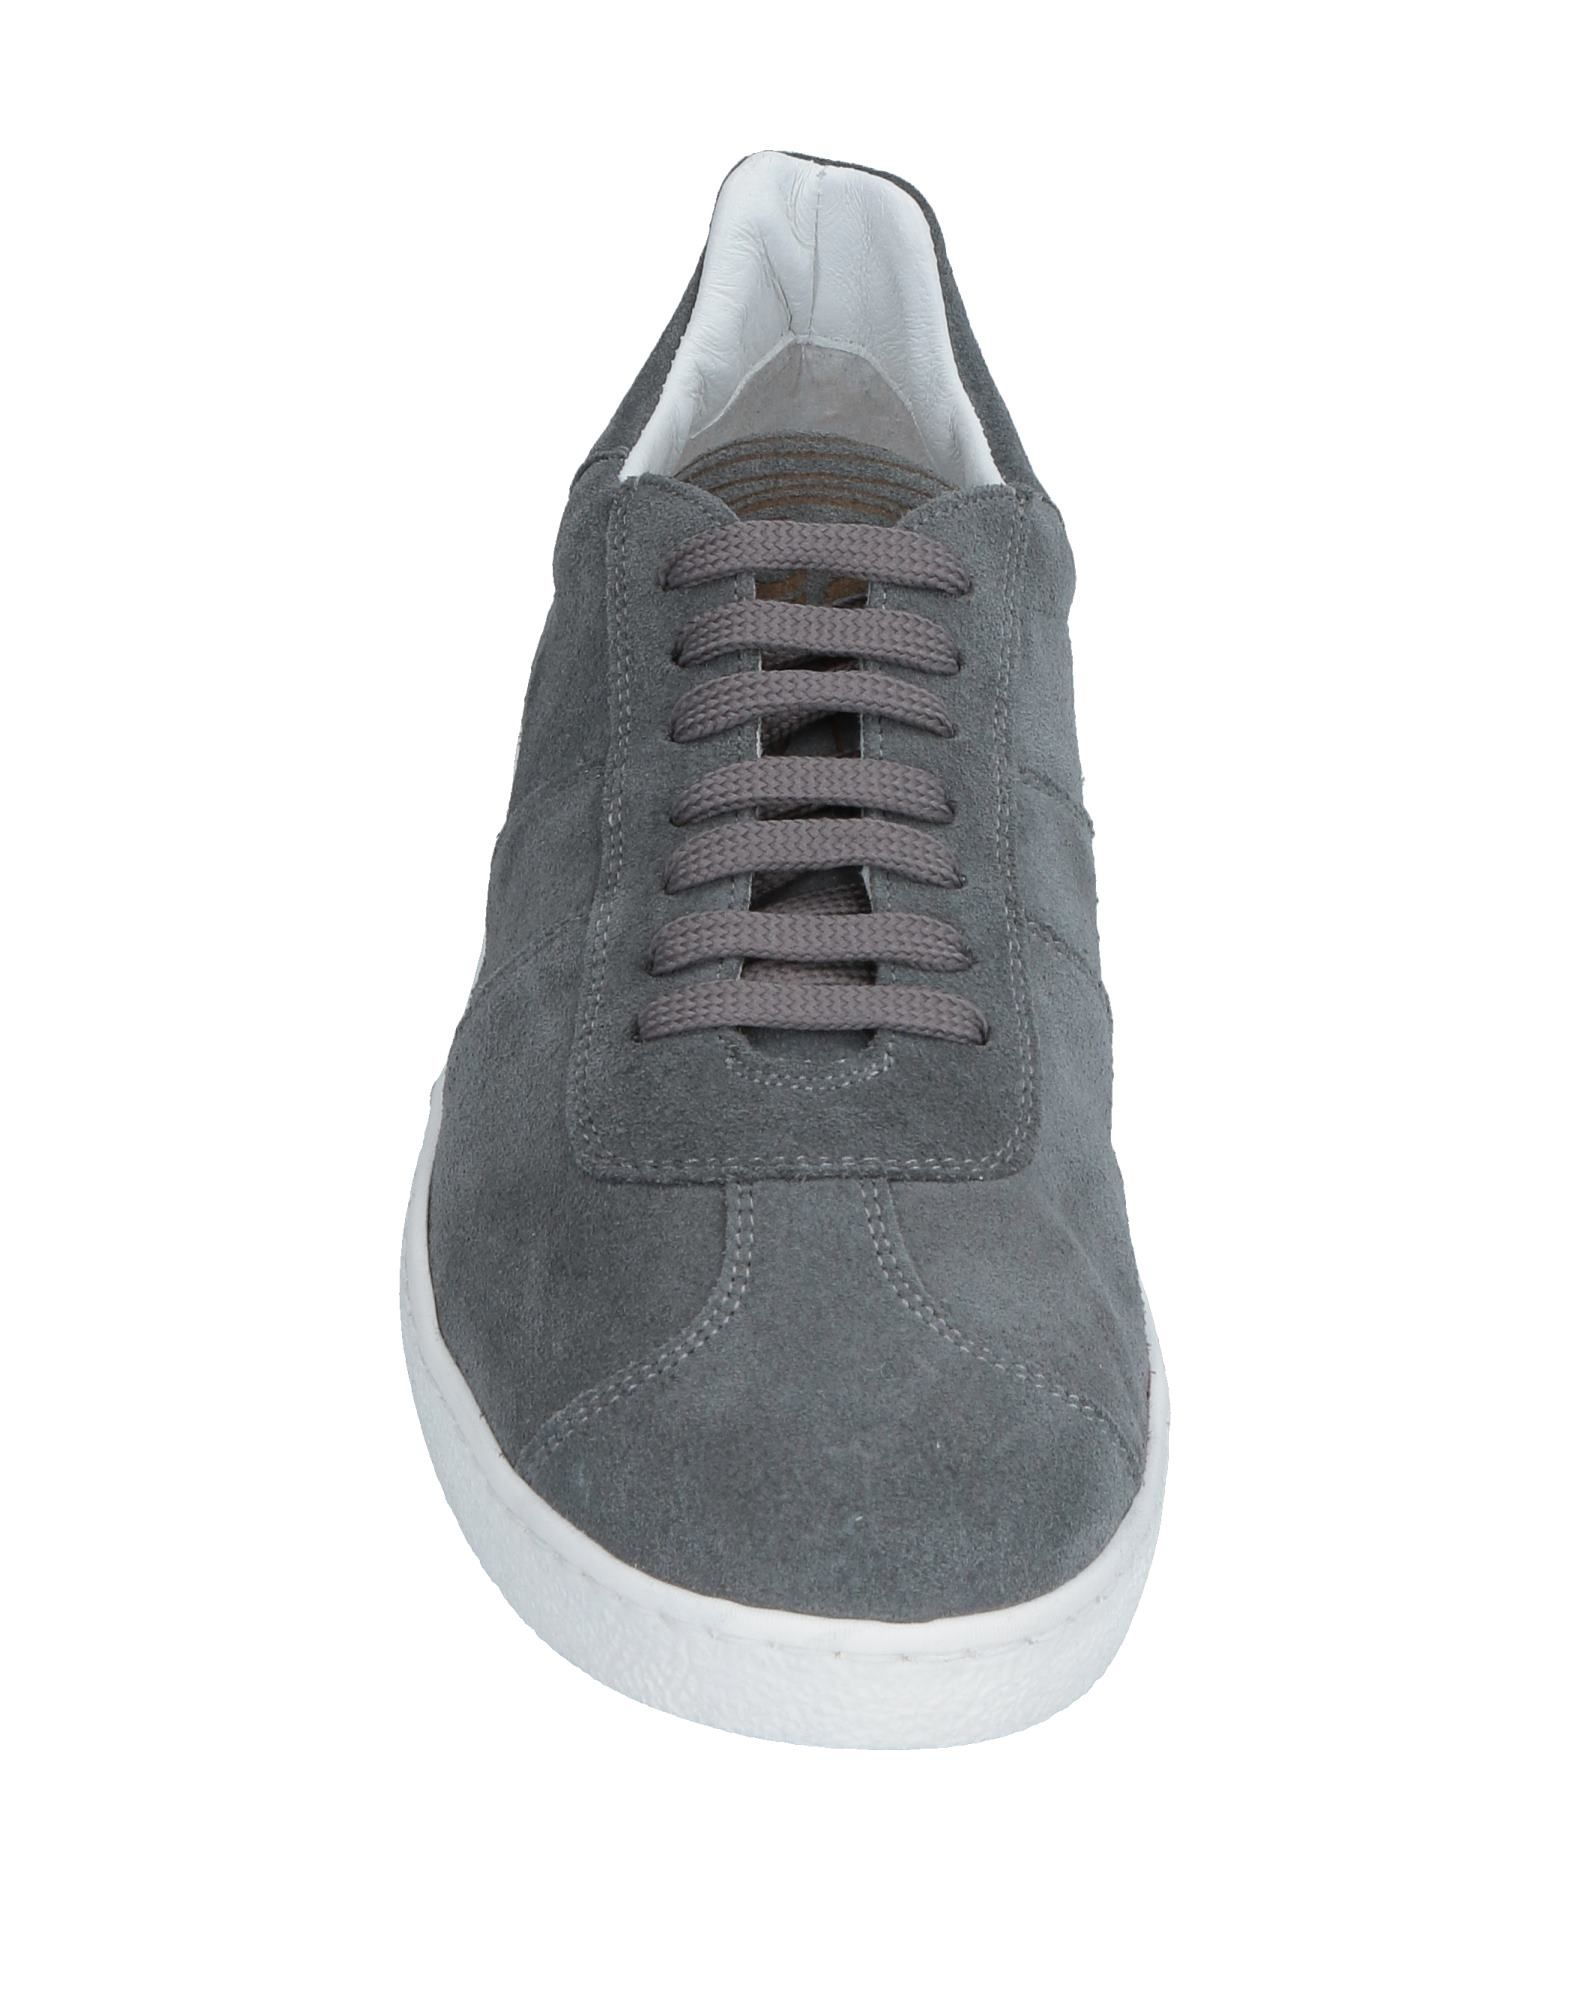 Pantofola D'oro Sneakers - Men Pantofola  D'oro Sneakers online on  Pantofola Canada - 11569606PE c33078